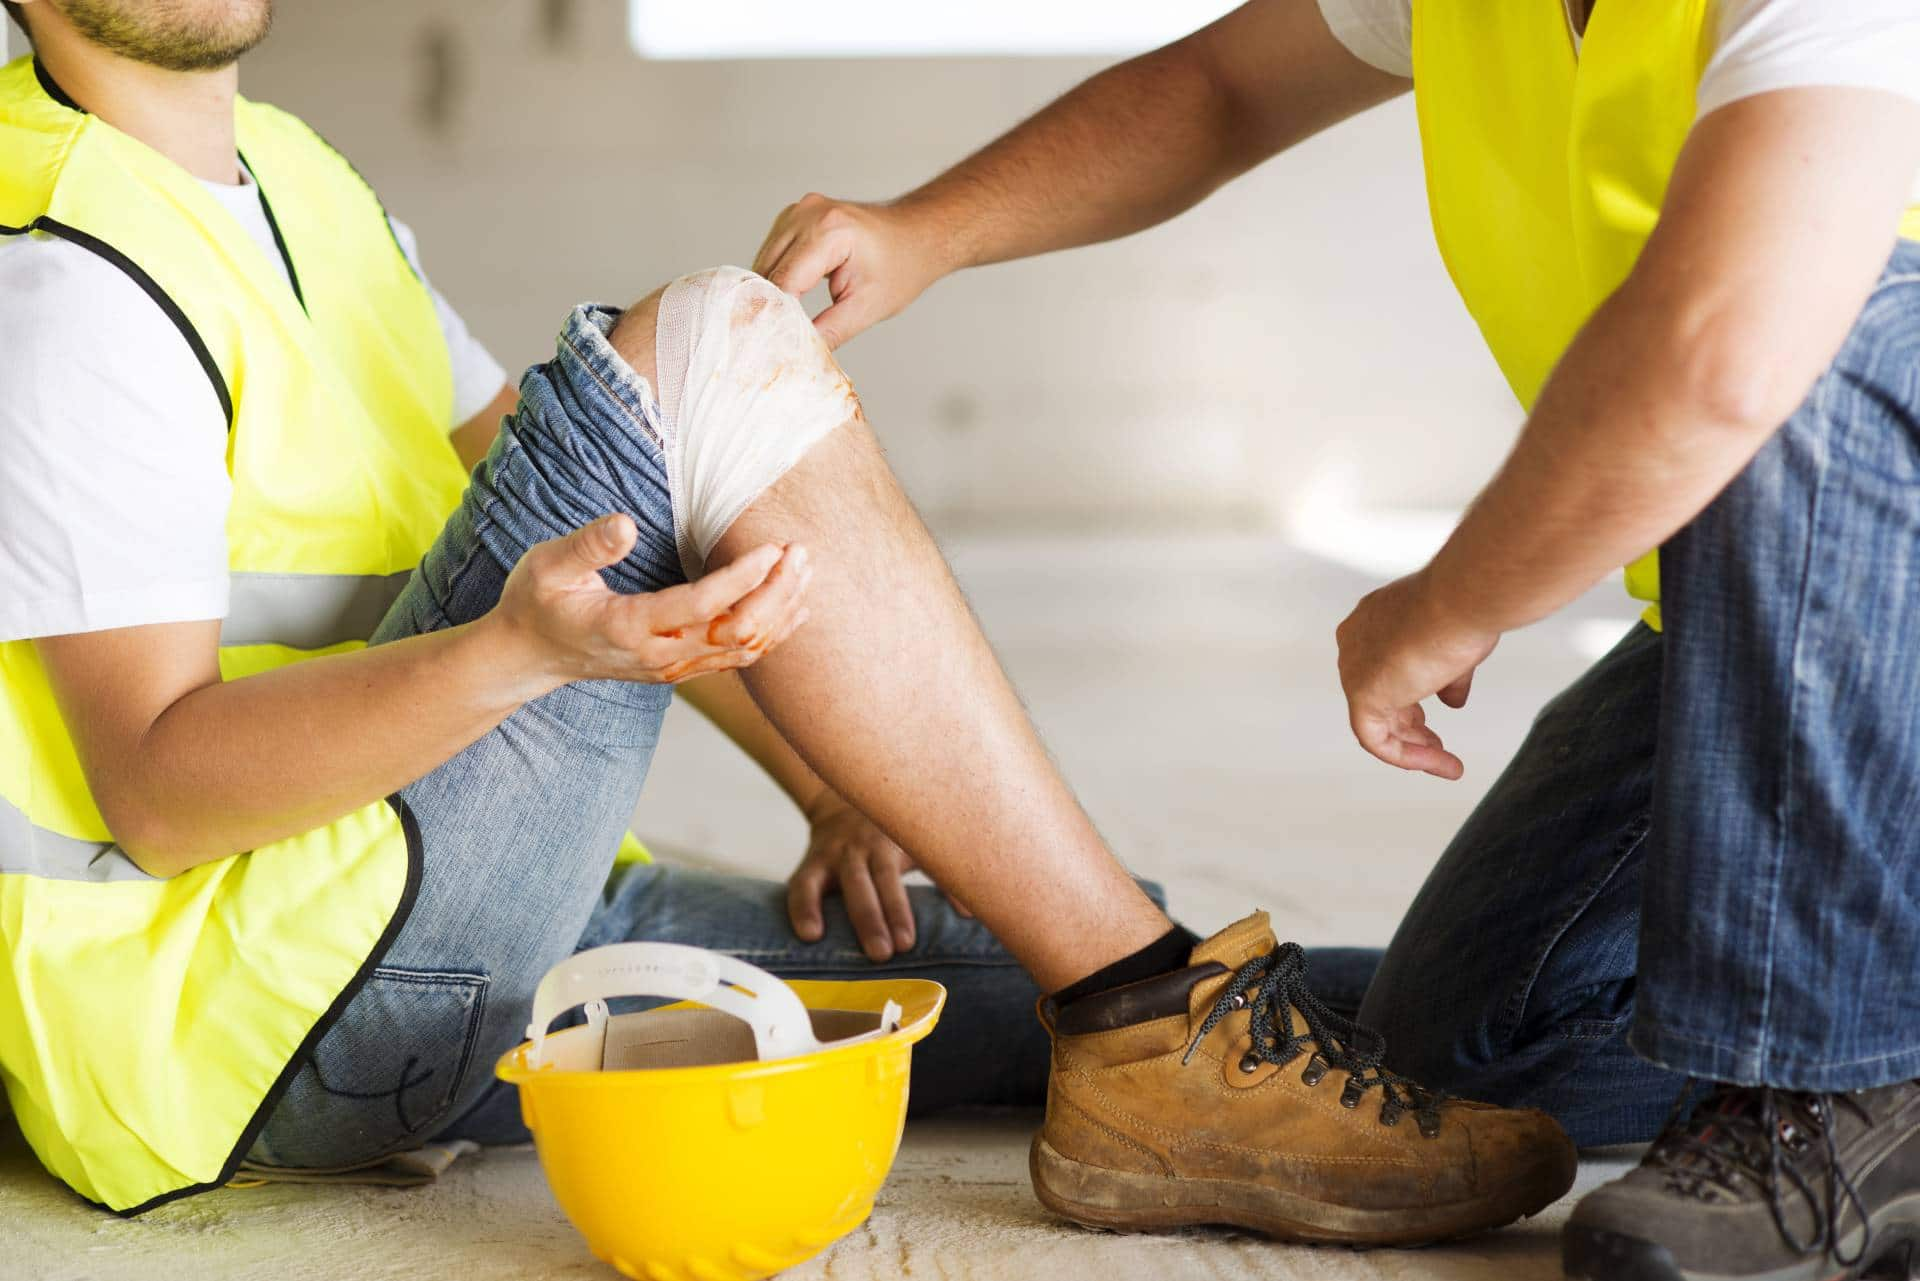 Hurt on the job? Schedule a free consultation with our personal injury lawyers at the Angell Law Firm in Roswell, Ga.